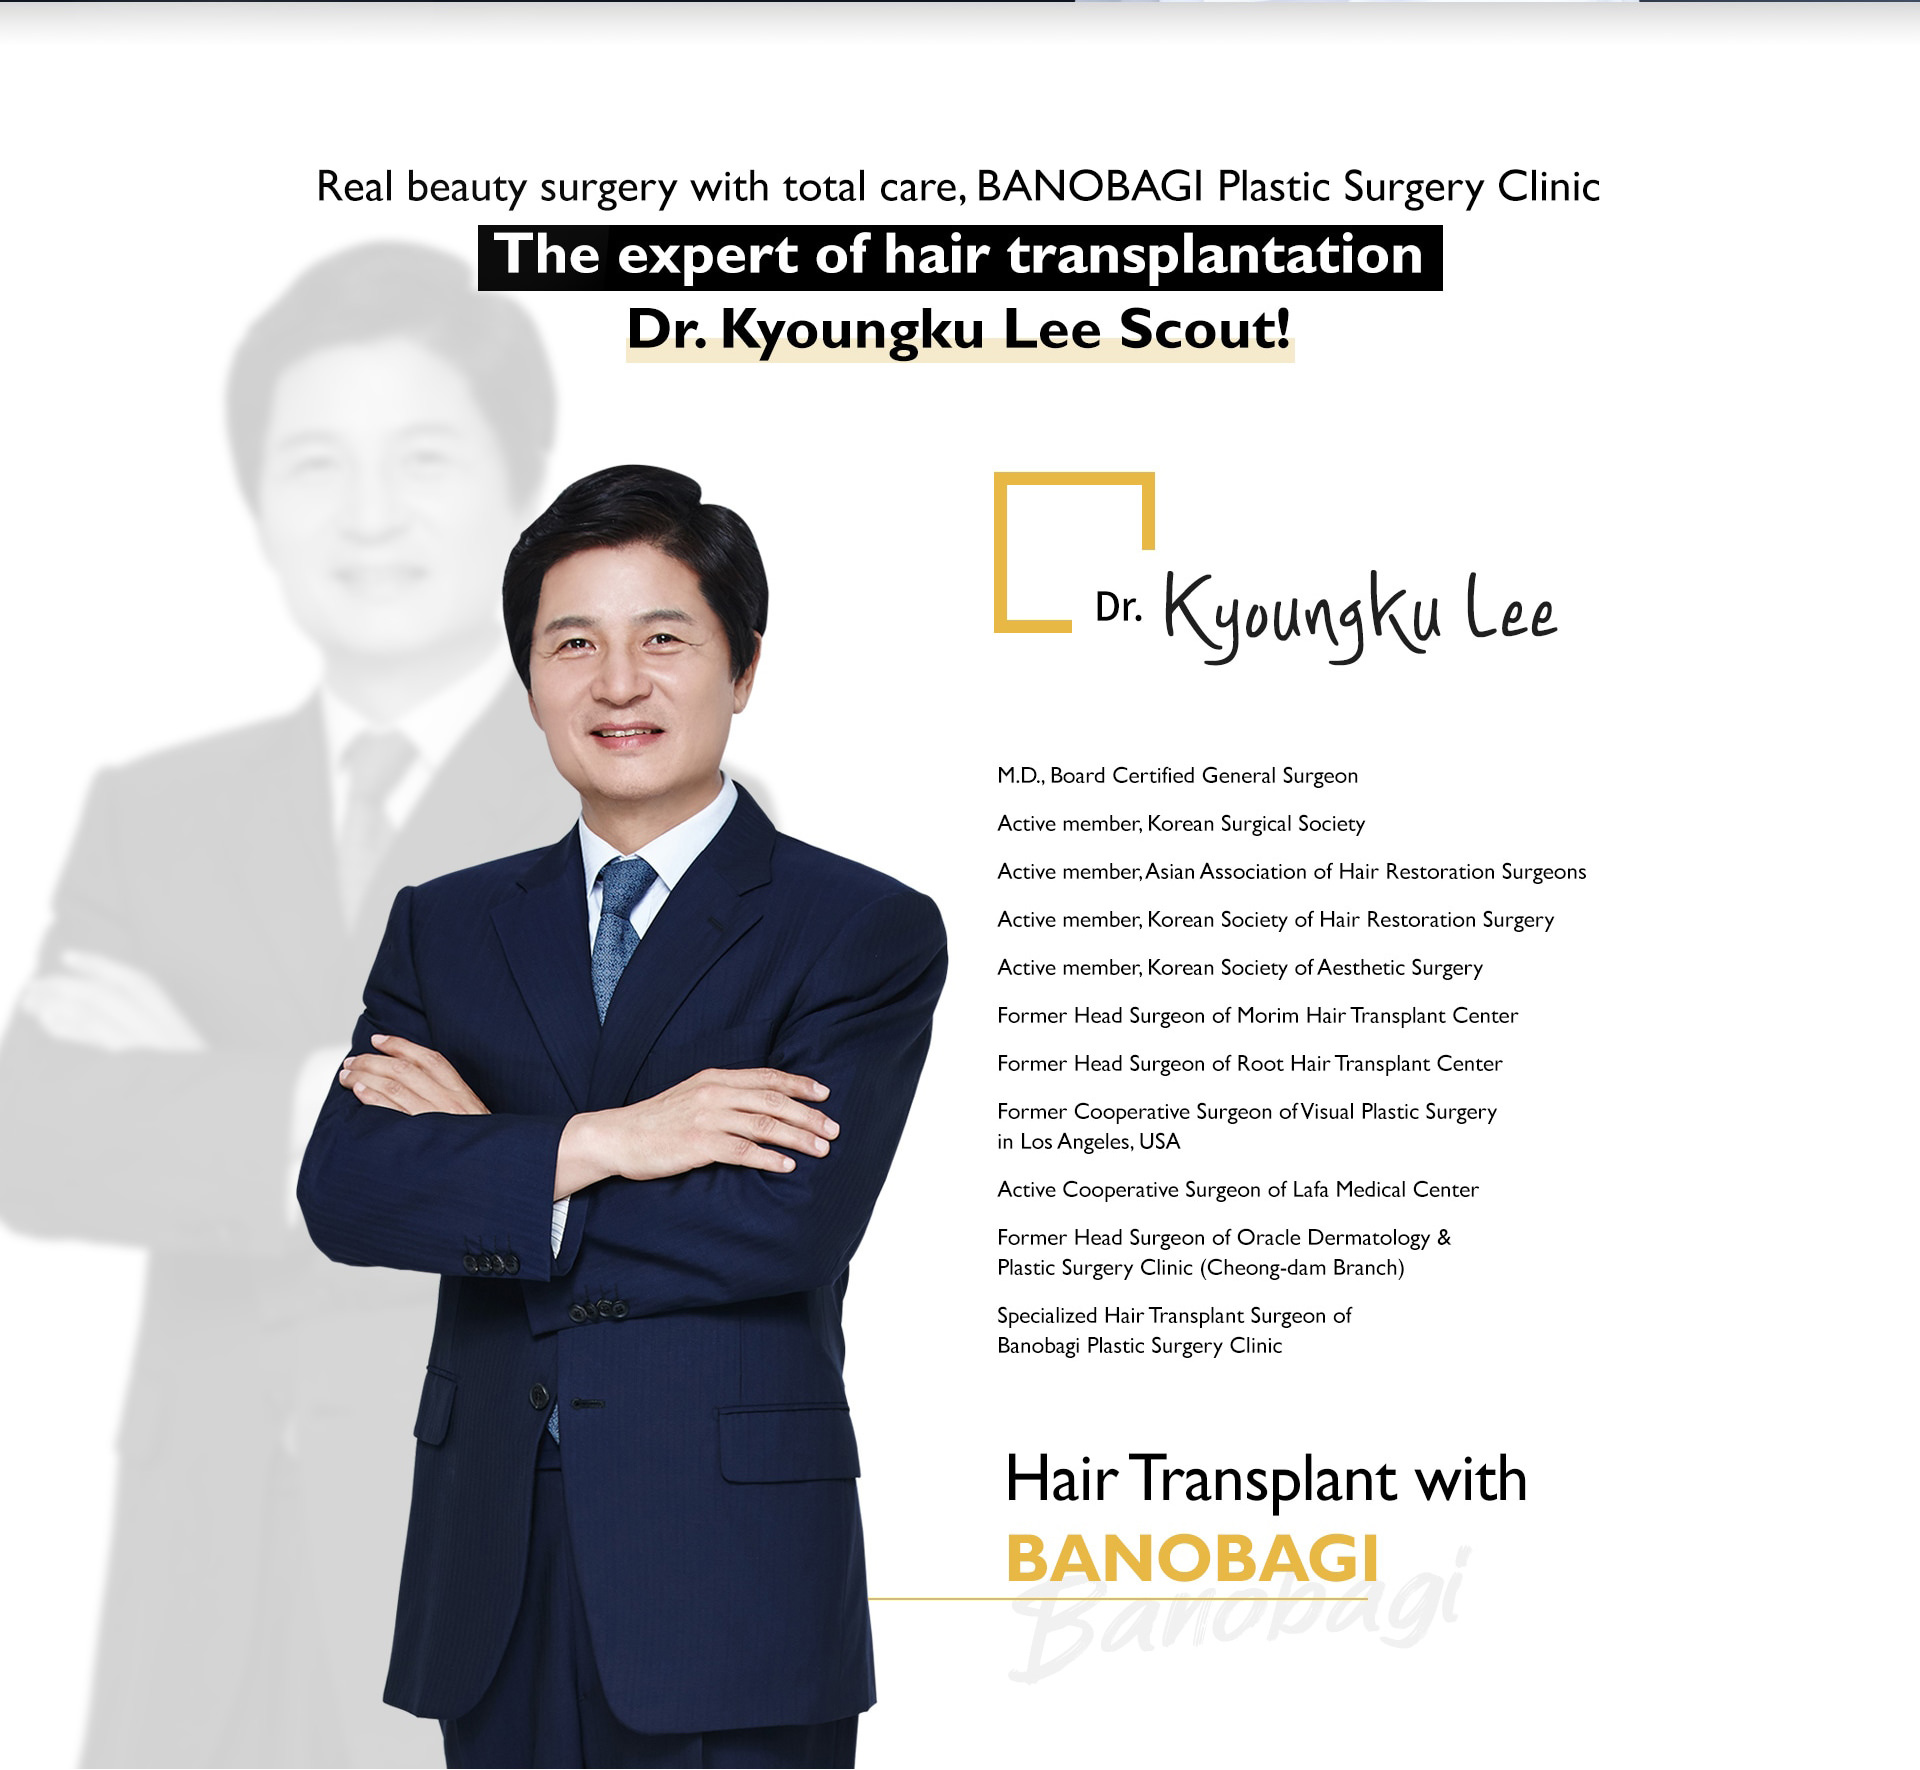 Real beauty surgery with total care, BANOBAGI Plastic Surgery Clinic The expert of hair transplantation Dr.Kyoungku Lee Scout!